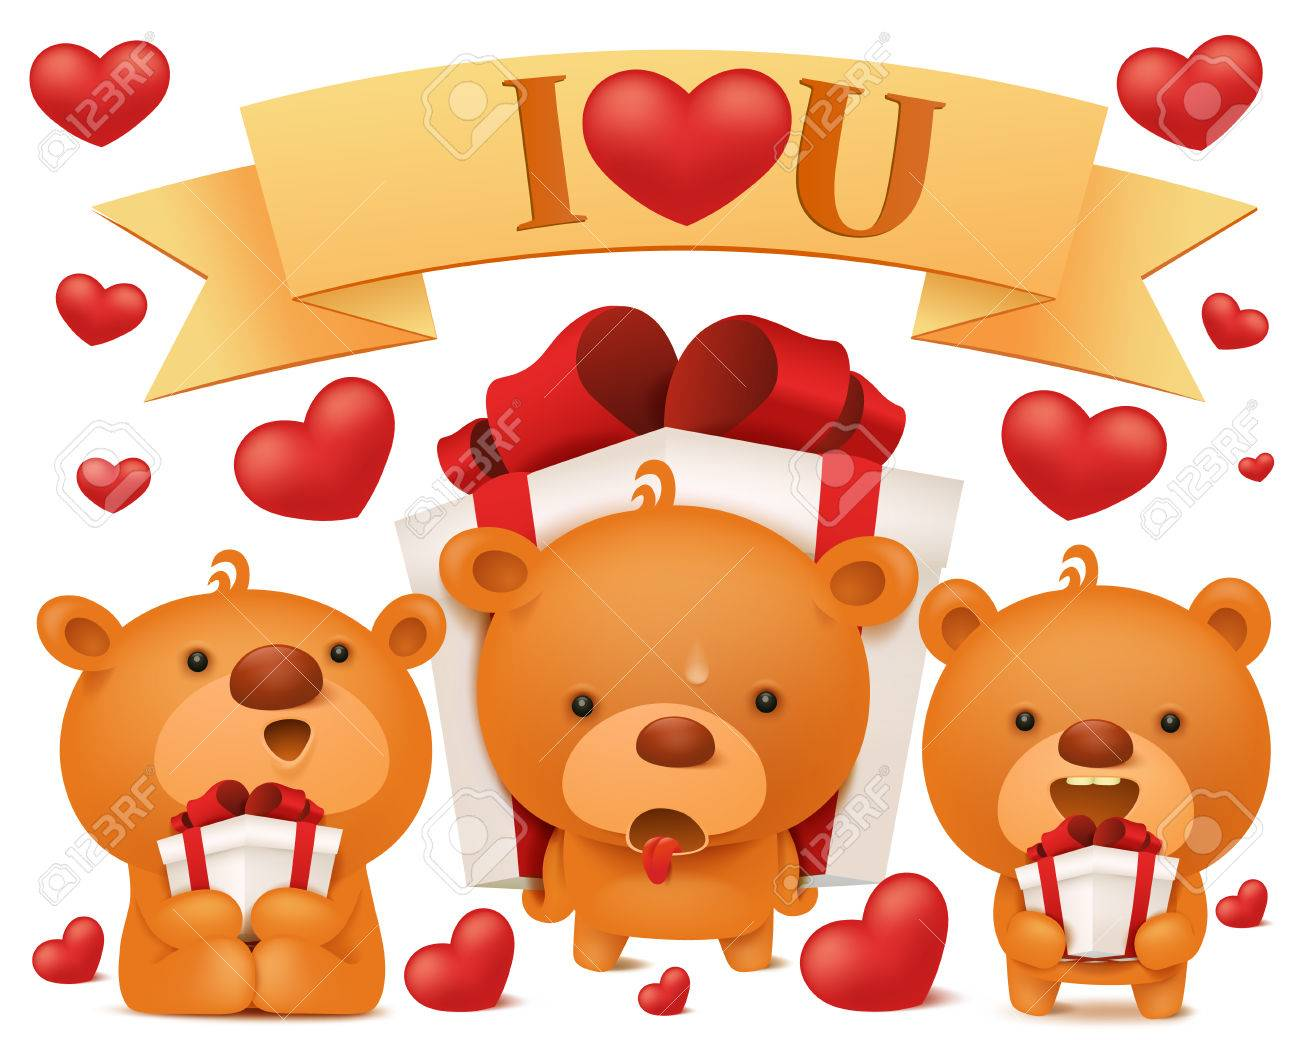 set of toy emoji teddy bears with gift boxes birthday collection